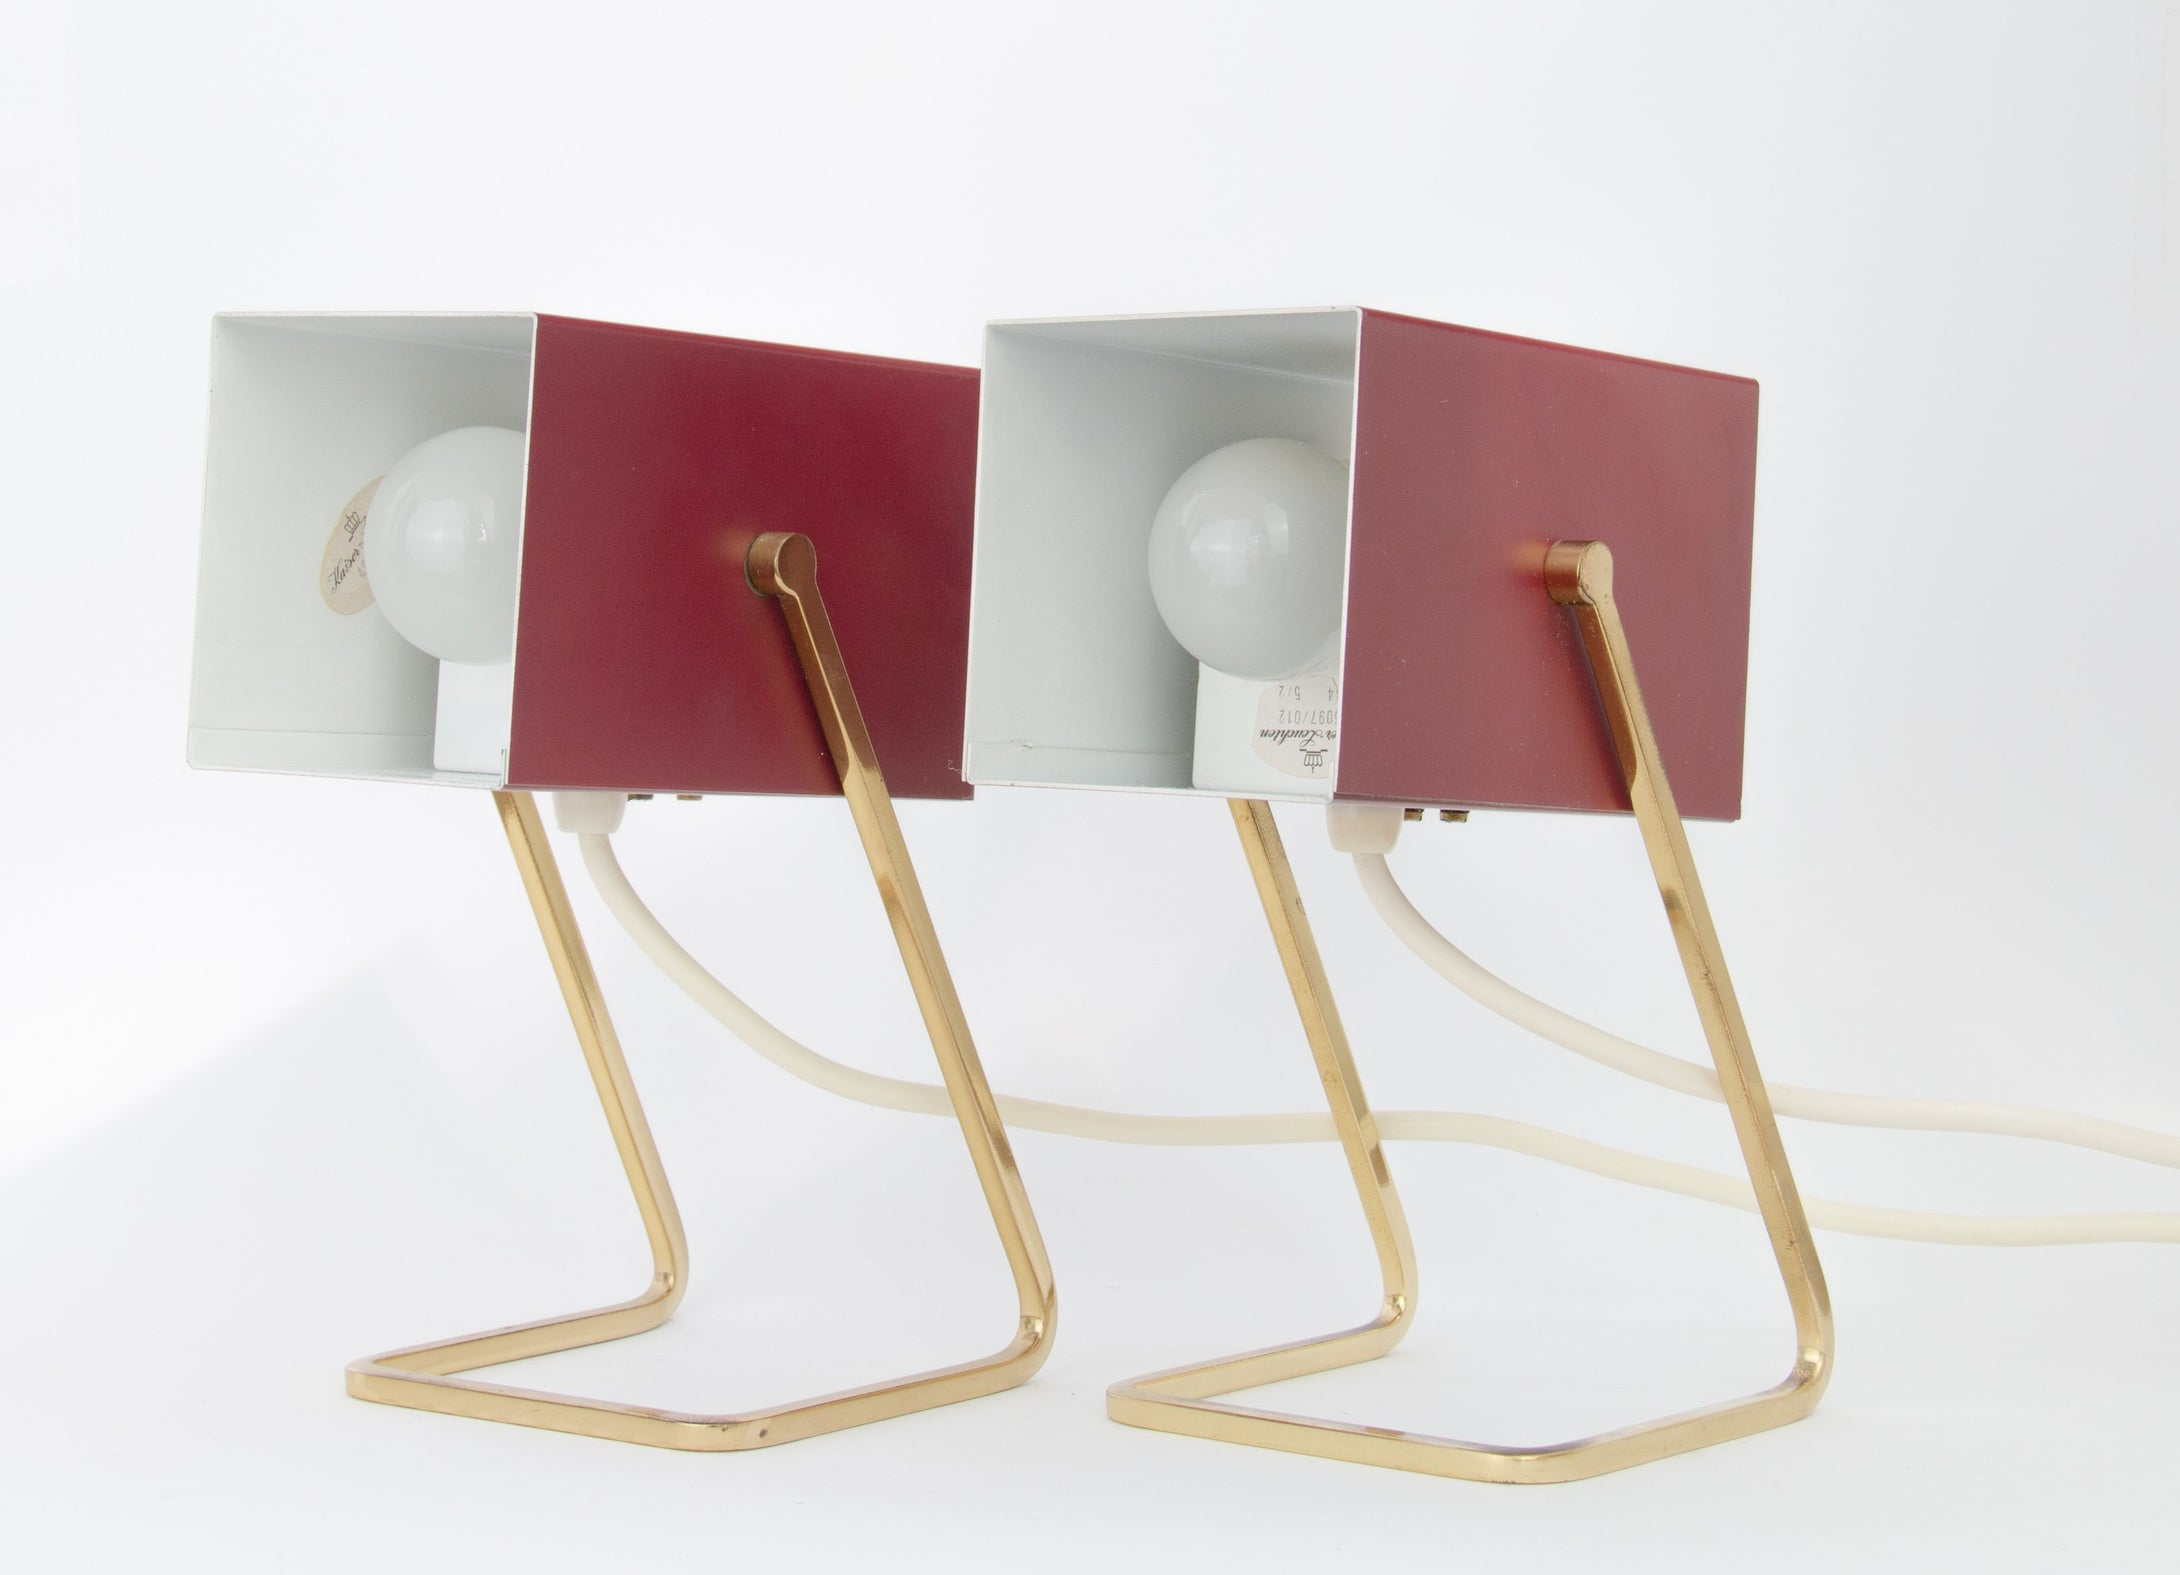 Pair of table lamps by Kaiser Lampen